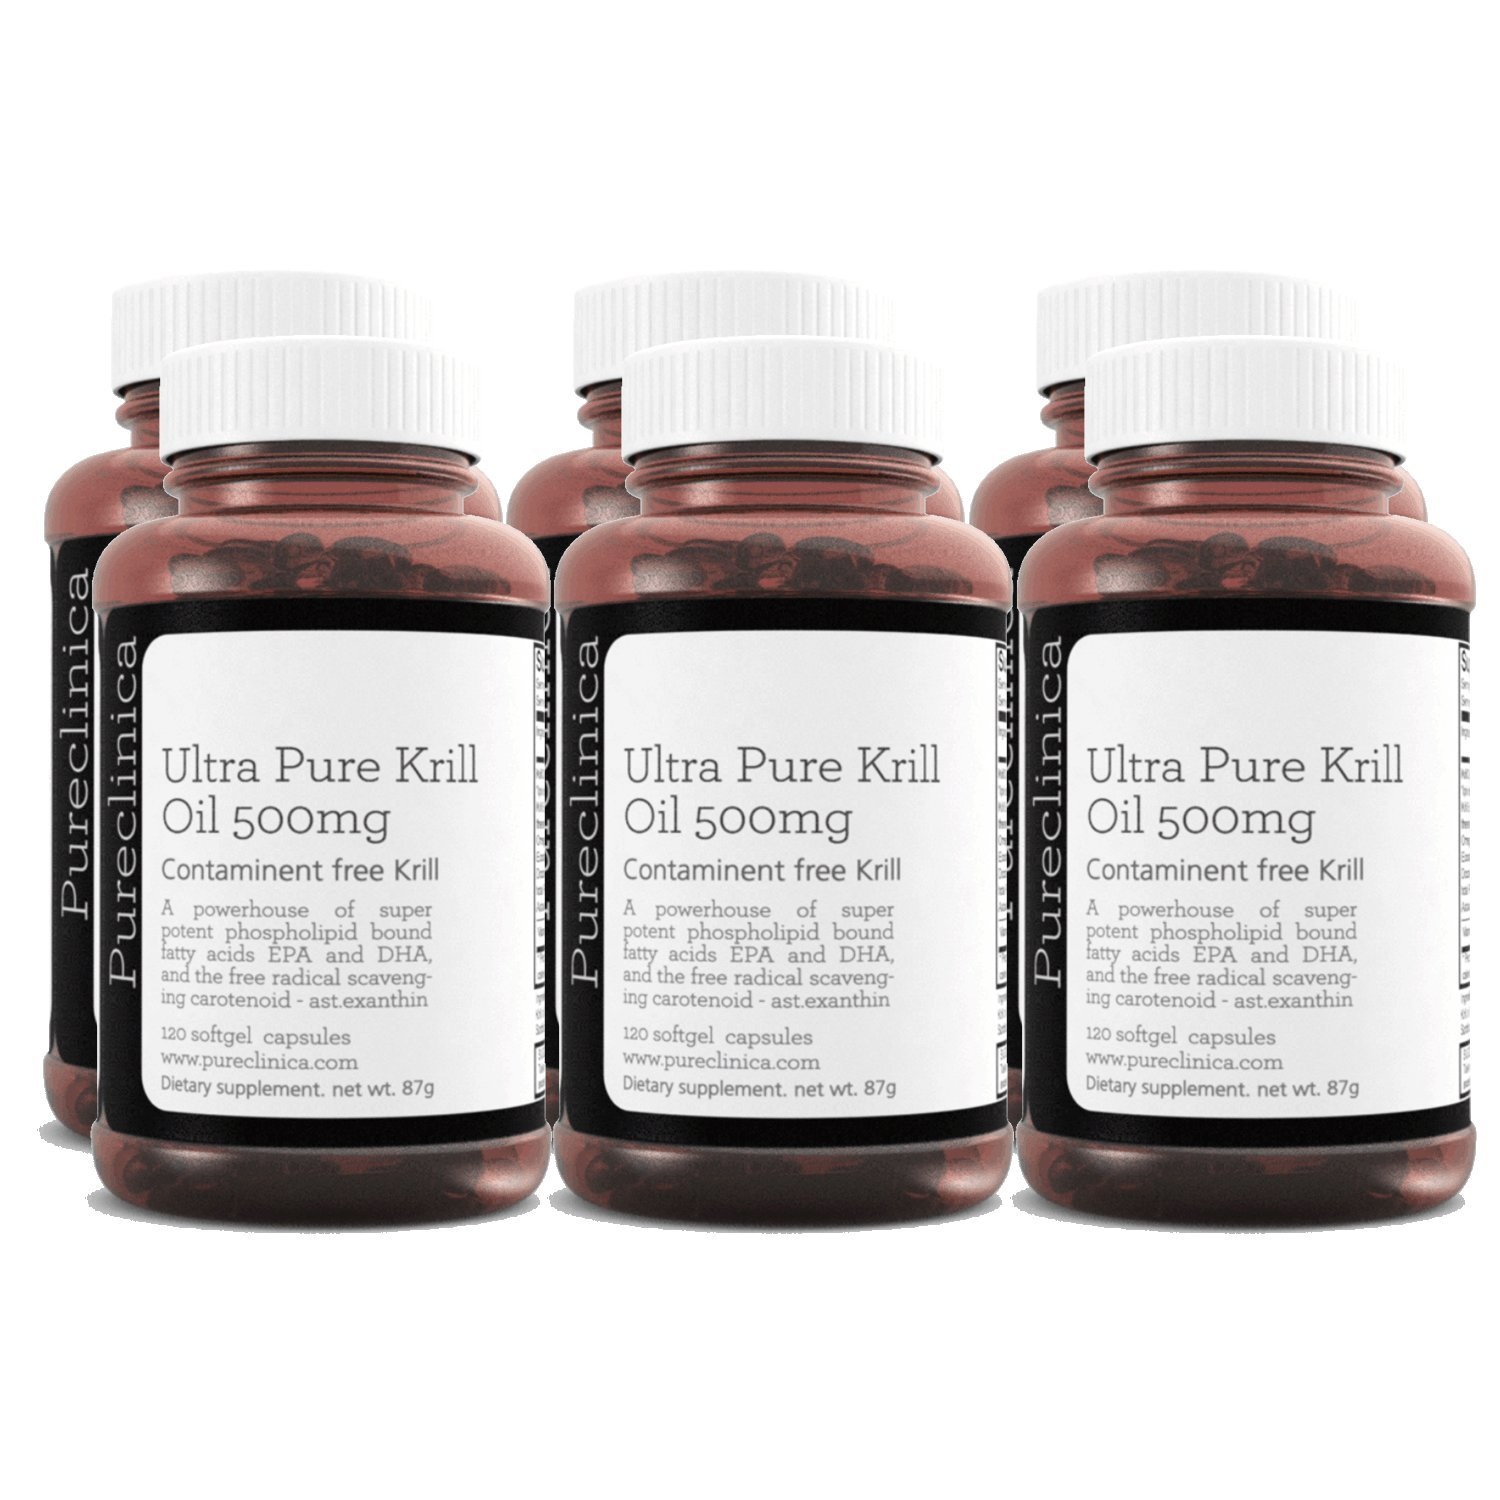 Ultra Pure Aker Krill Oil 500mg x 720 Capsules (6 Bottles) - sourced in The unpolluted Waters of Antarctic Providing a Rich Supply of Astaxanthin, Omega 3, and Vitamin D. SKU: KRI500x6